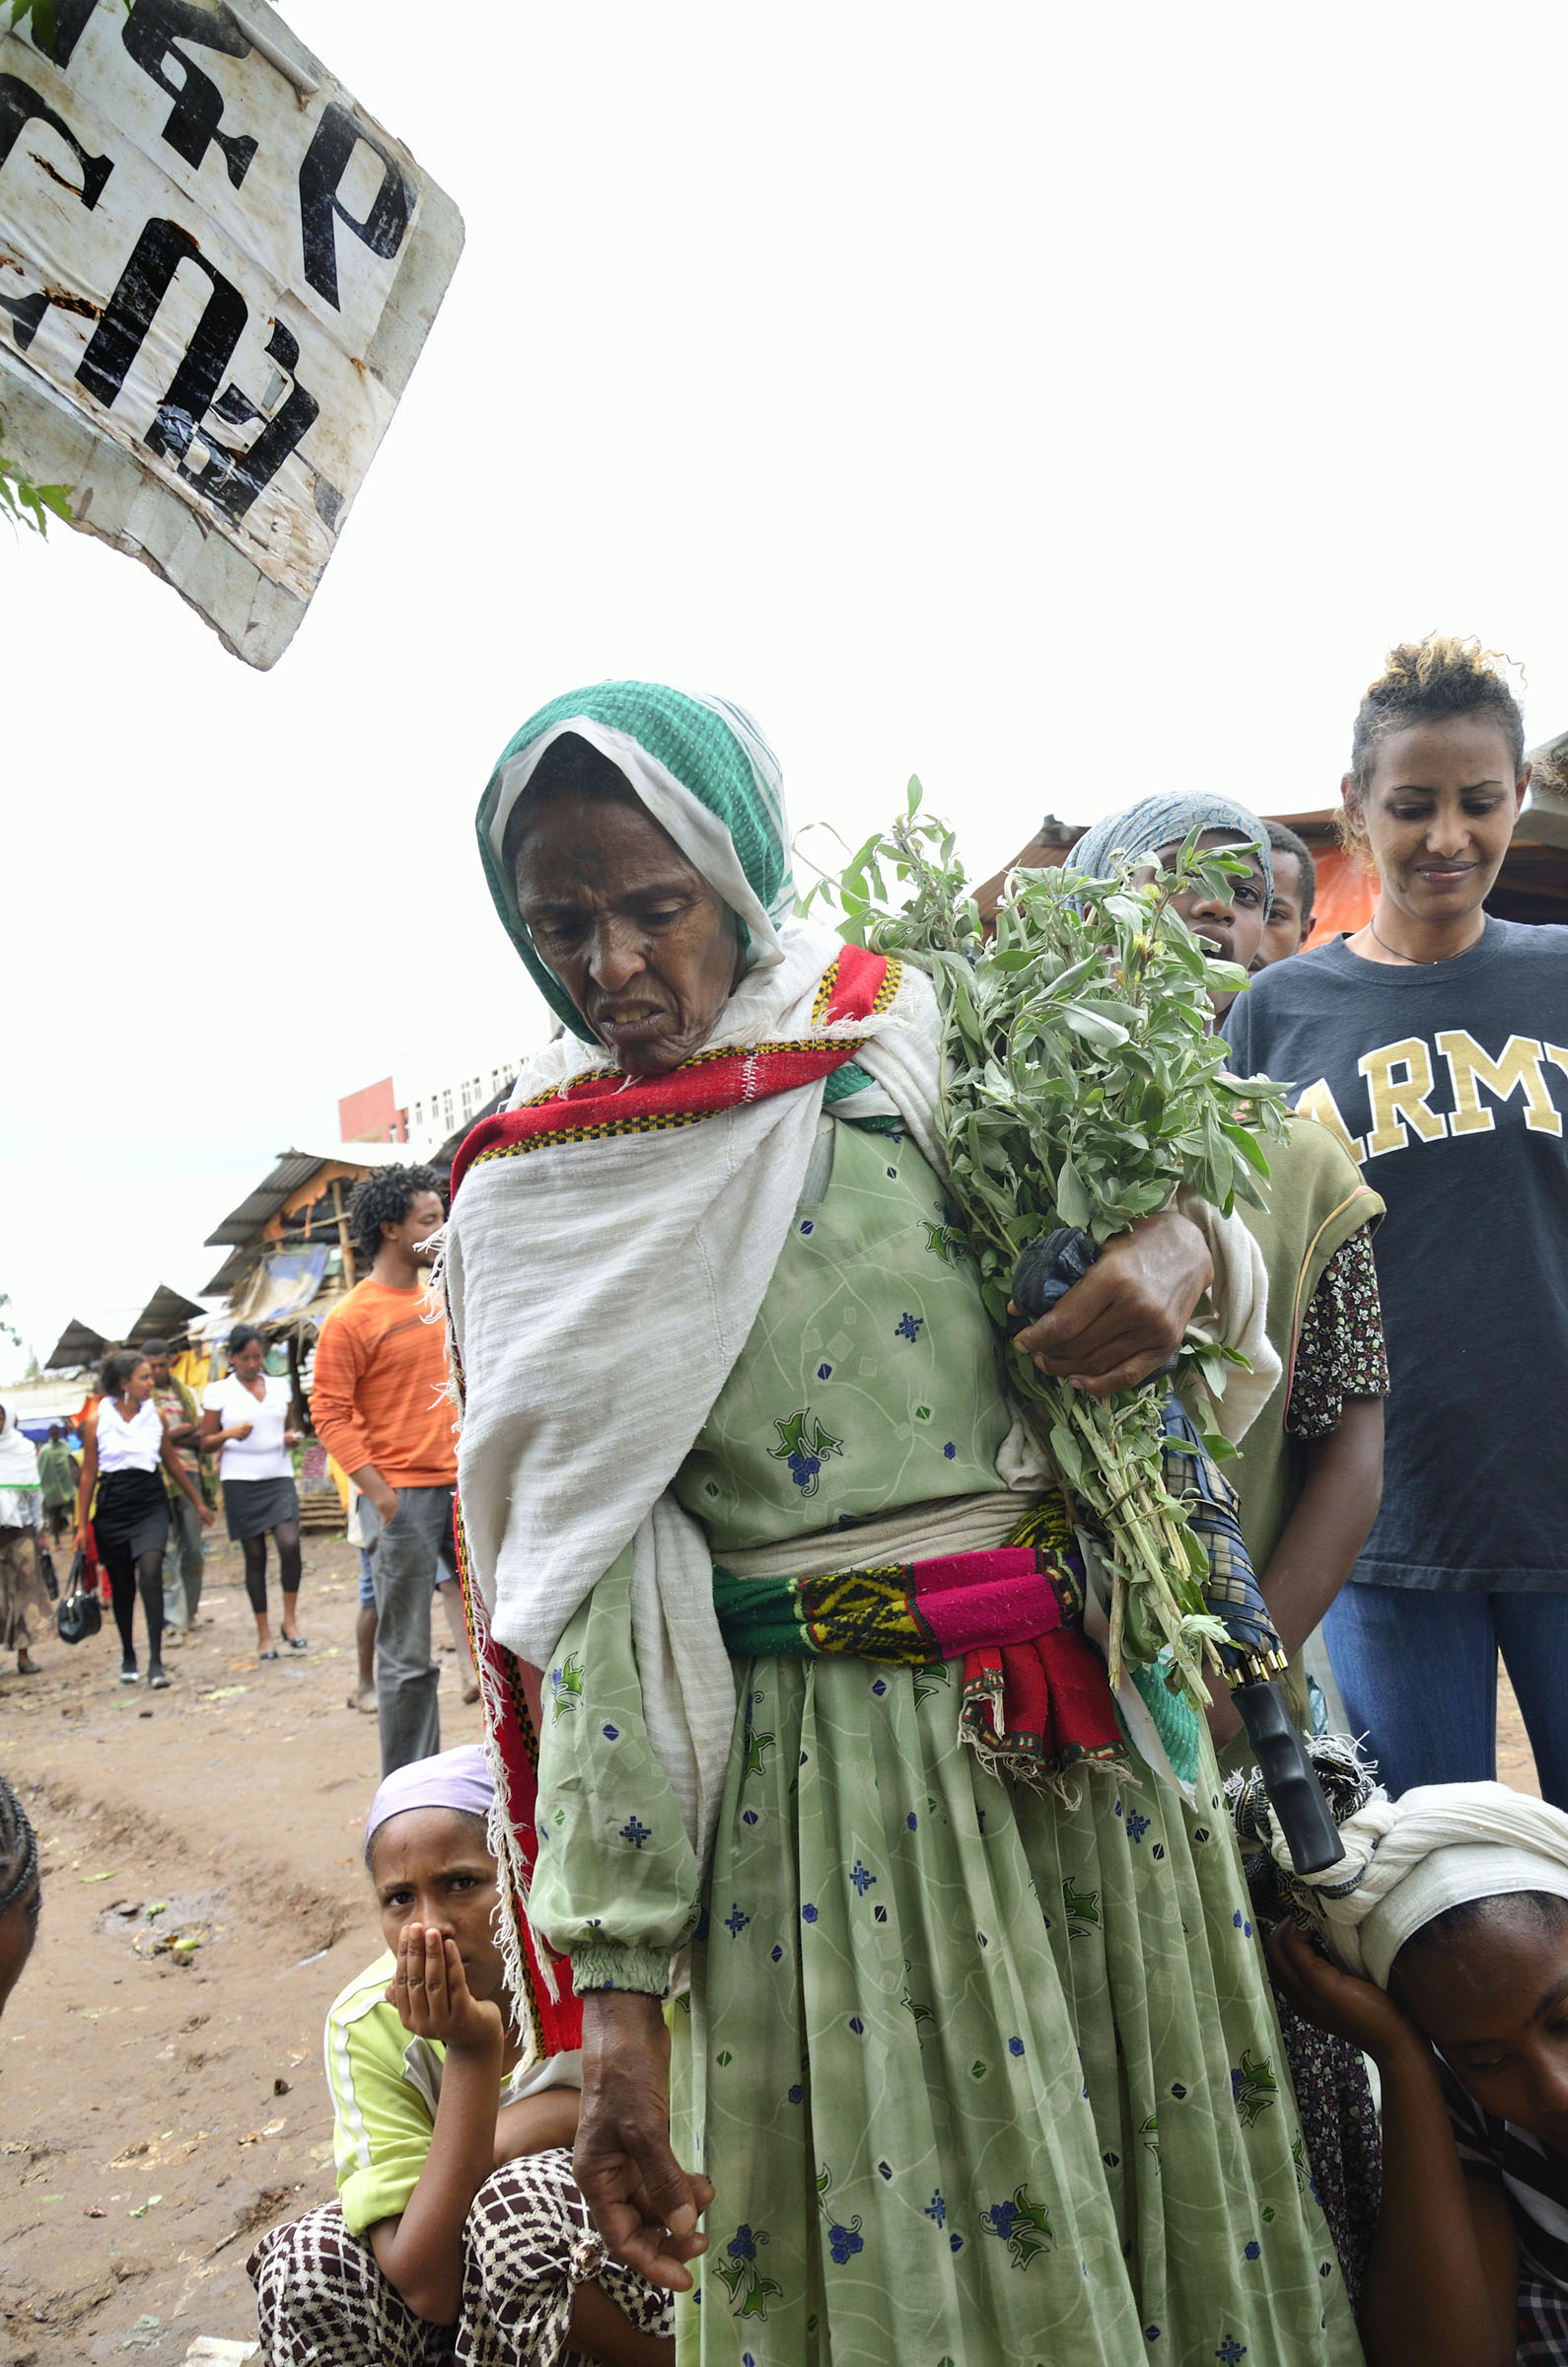 Ethiopian woman in green dress carrying herbs